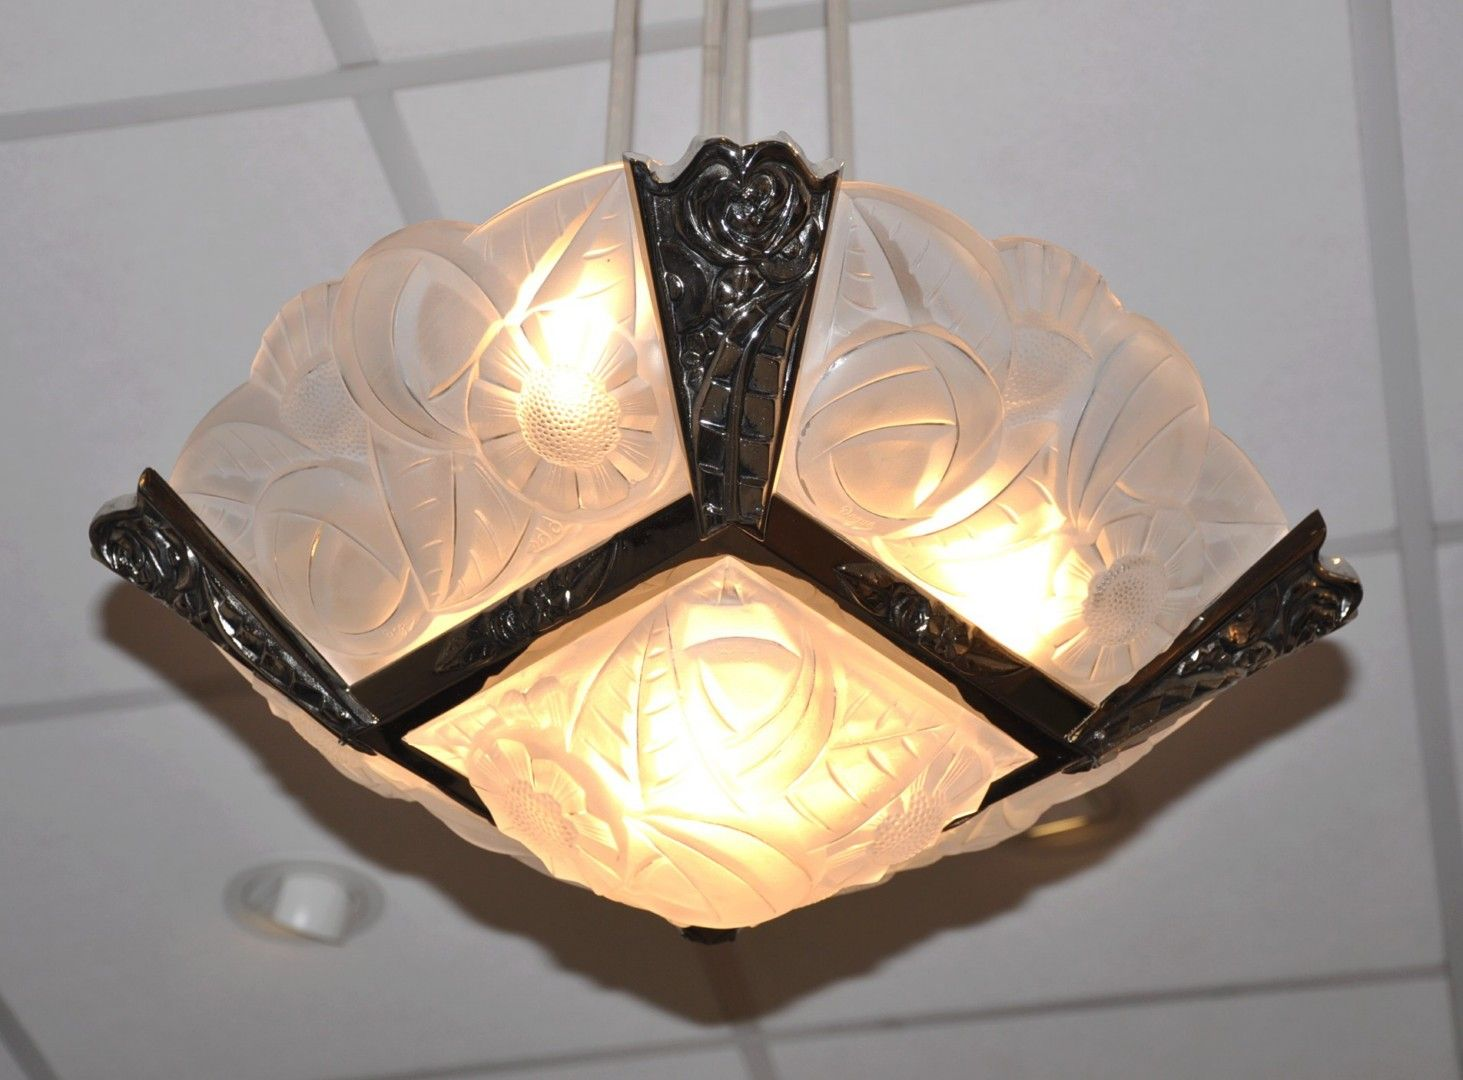 Art deco plaque chandelier by andr guron for degu for sale at pamono price per piece aloadofball Choice Image